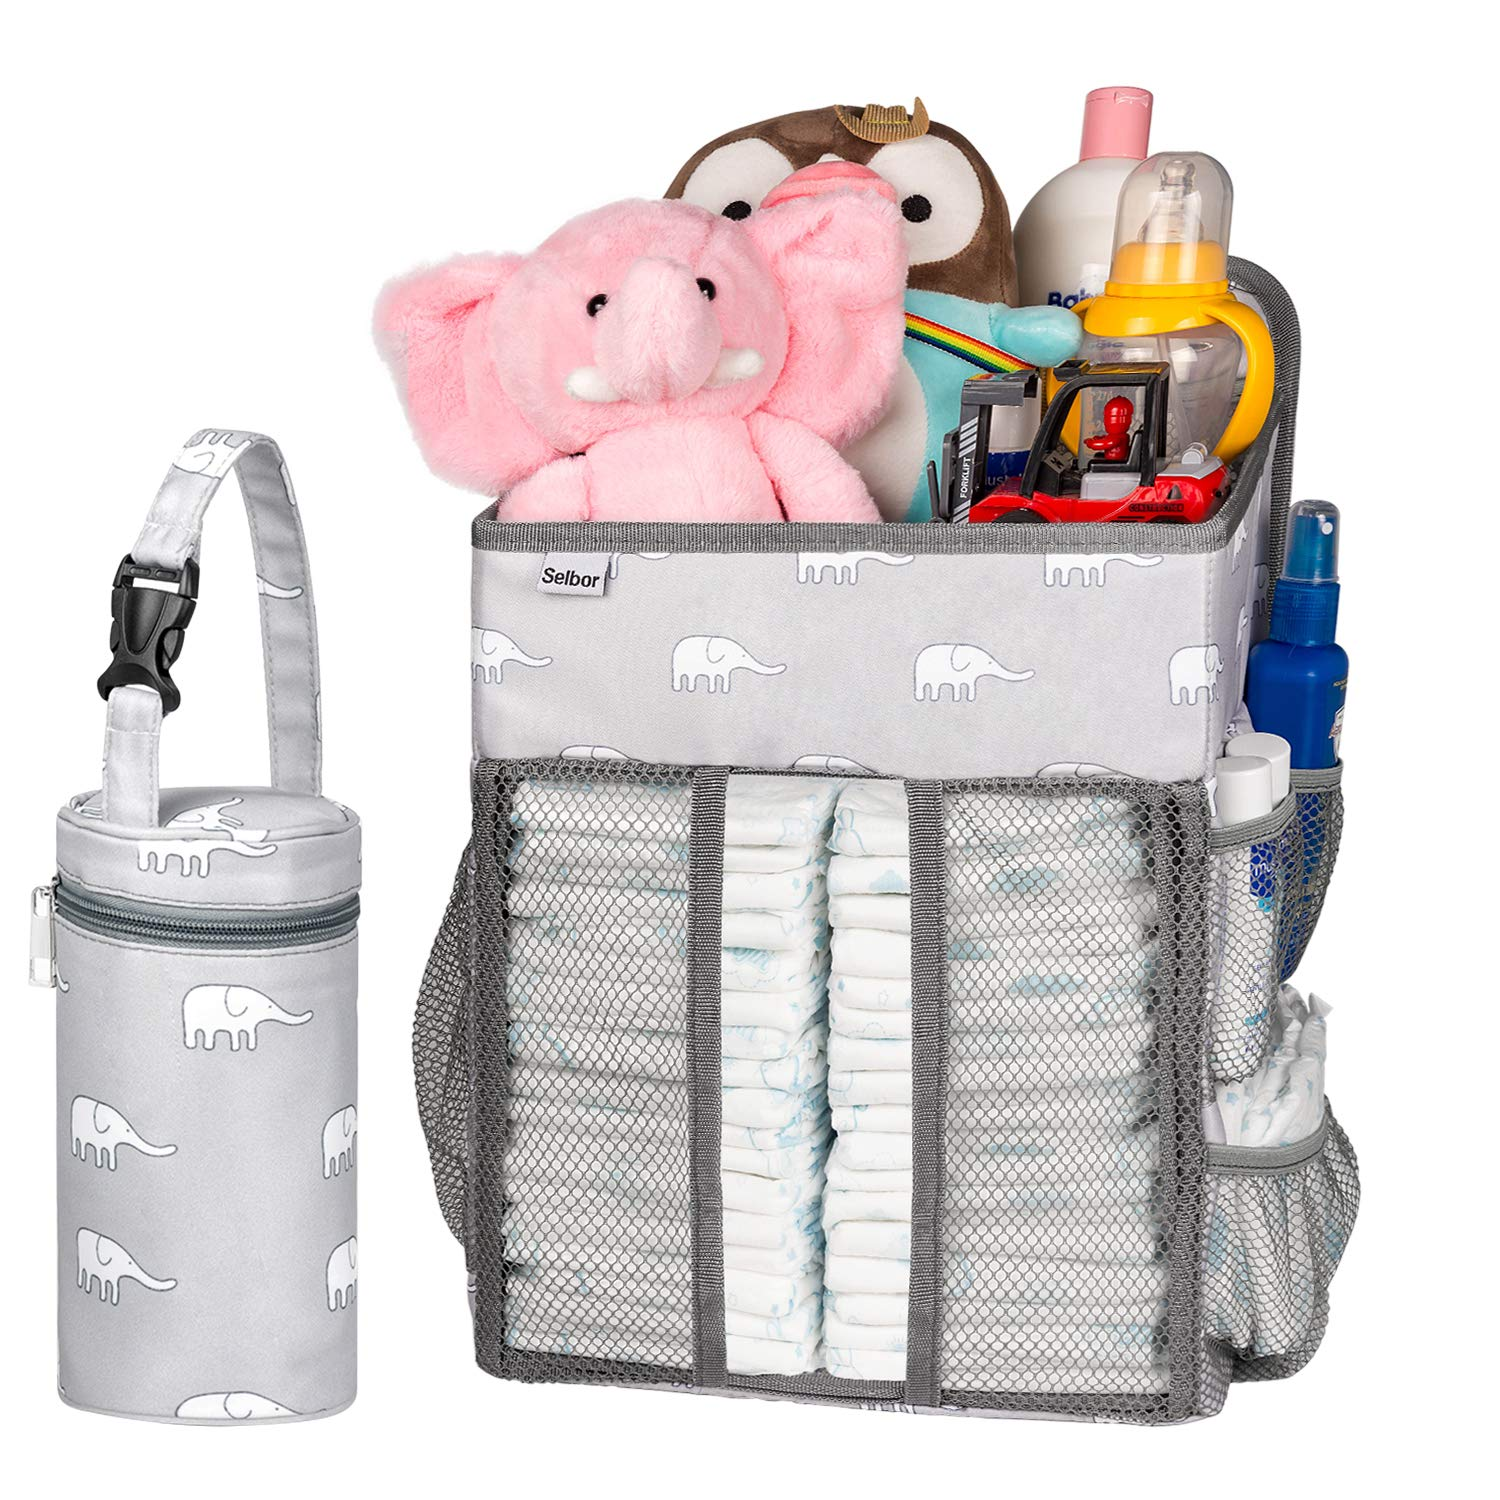 Hanging Nursery Organizer and Baby Diaper Caddy, SELBOR Diapers Stacker Storage Bag for Changing Table, Crib, Playard or Wall   Baby Shower Gifts for Newborn, Gift Baby Bottle Cooler Bag Included by Selbor